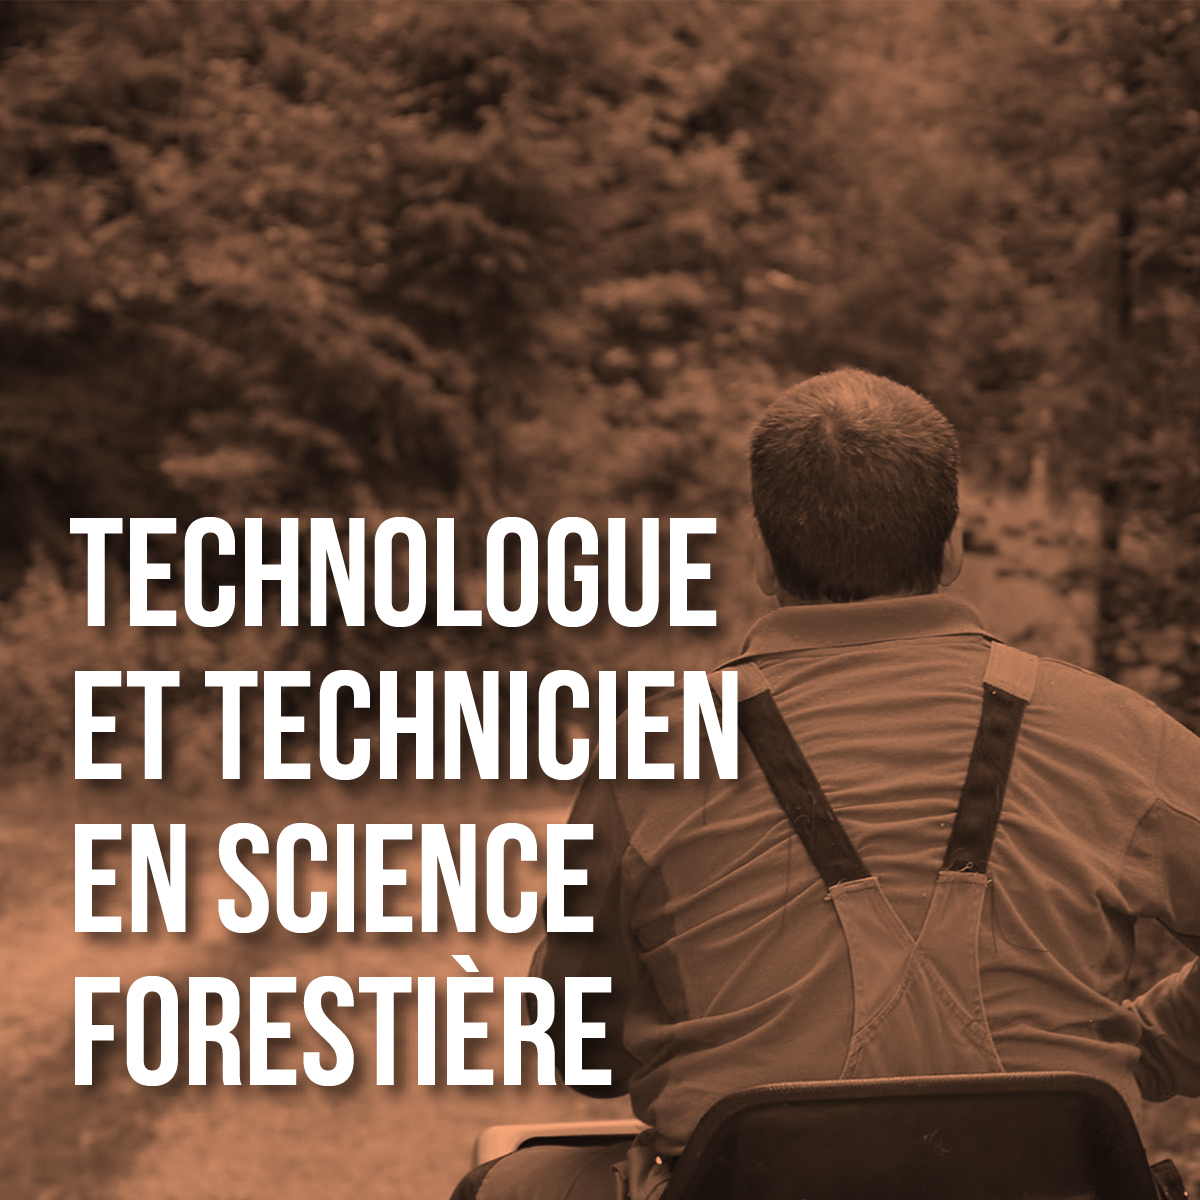 science_forest